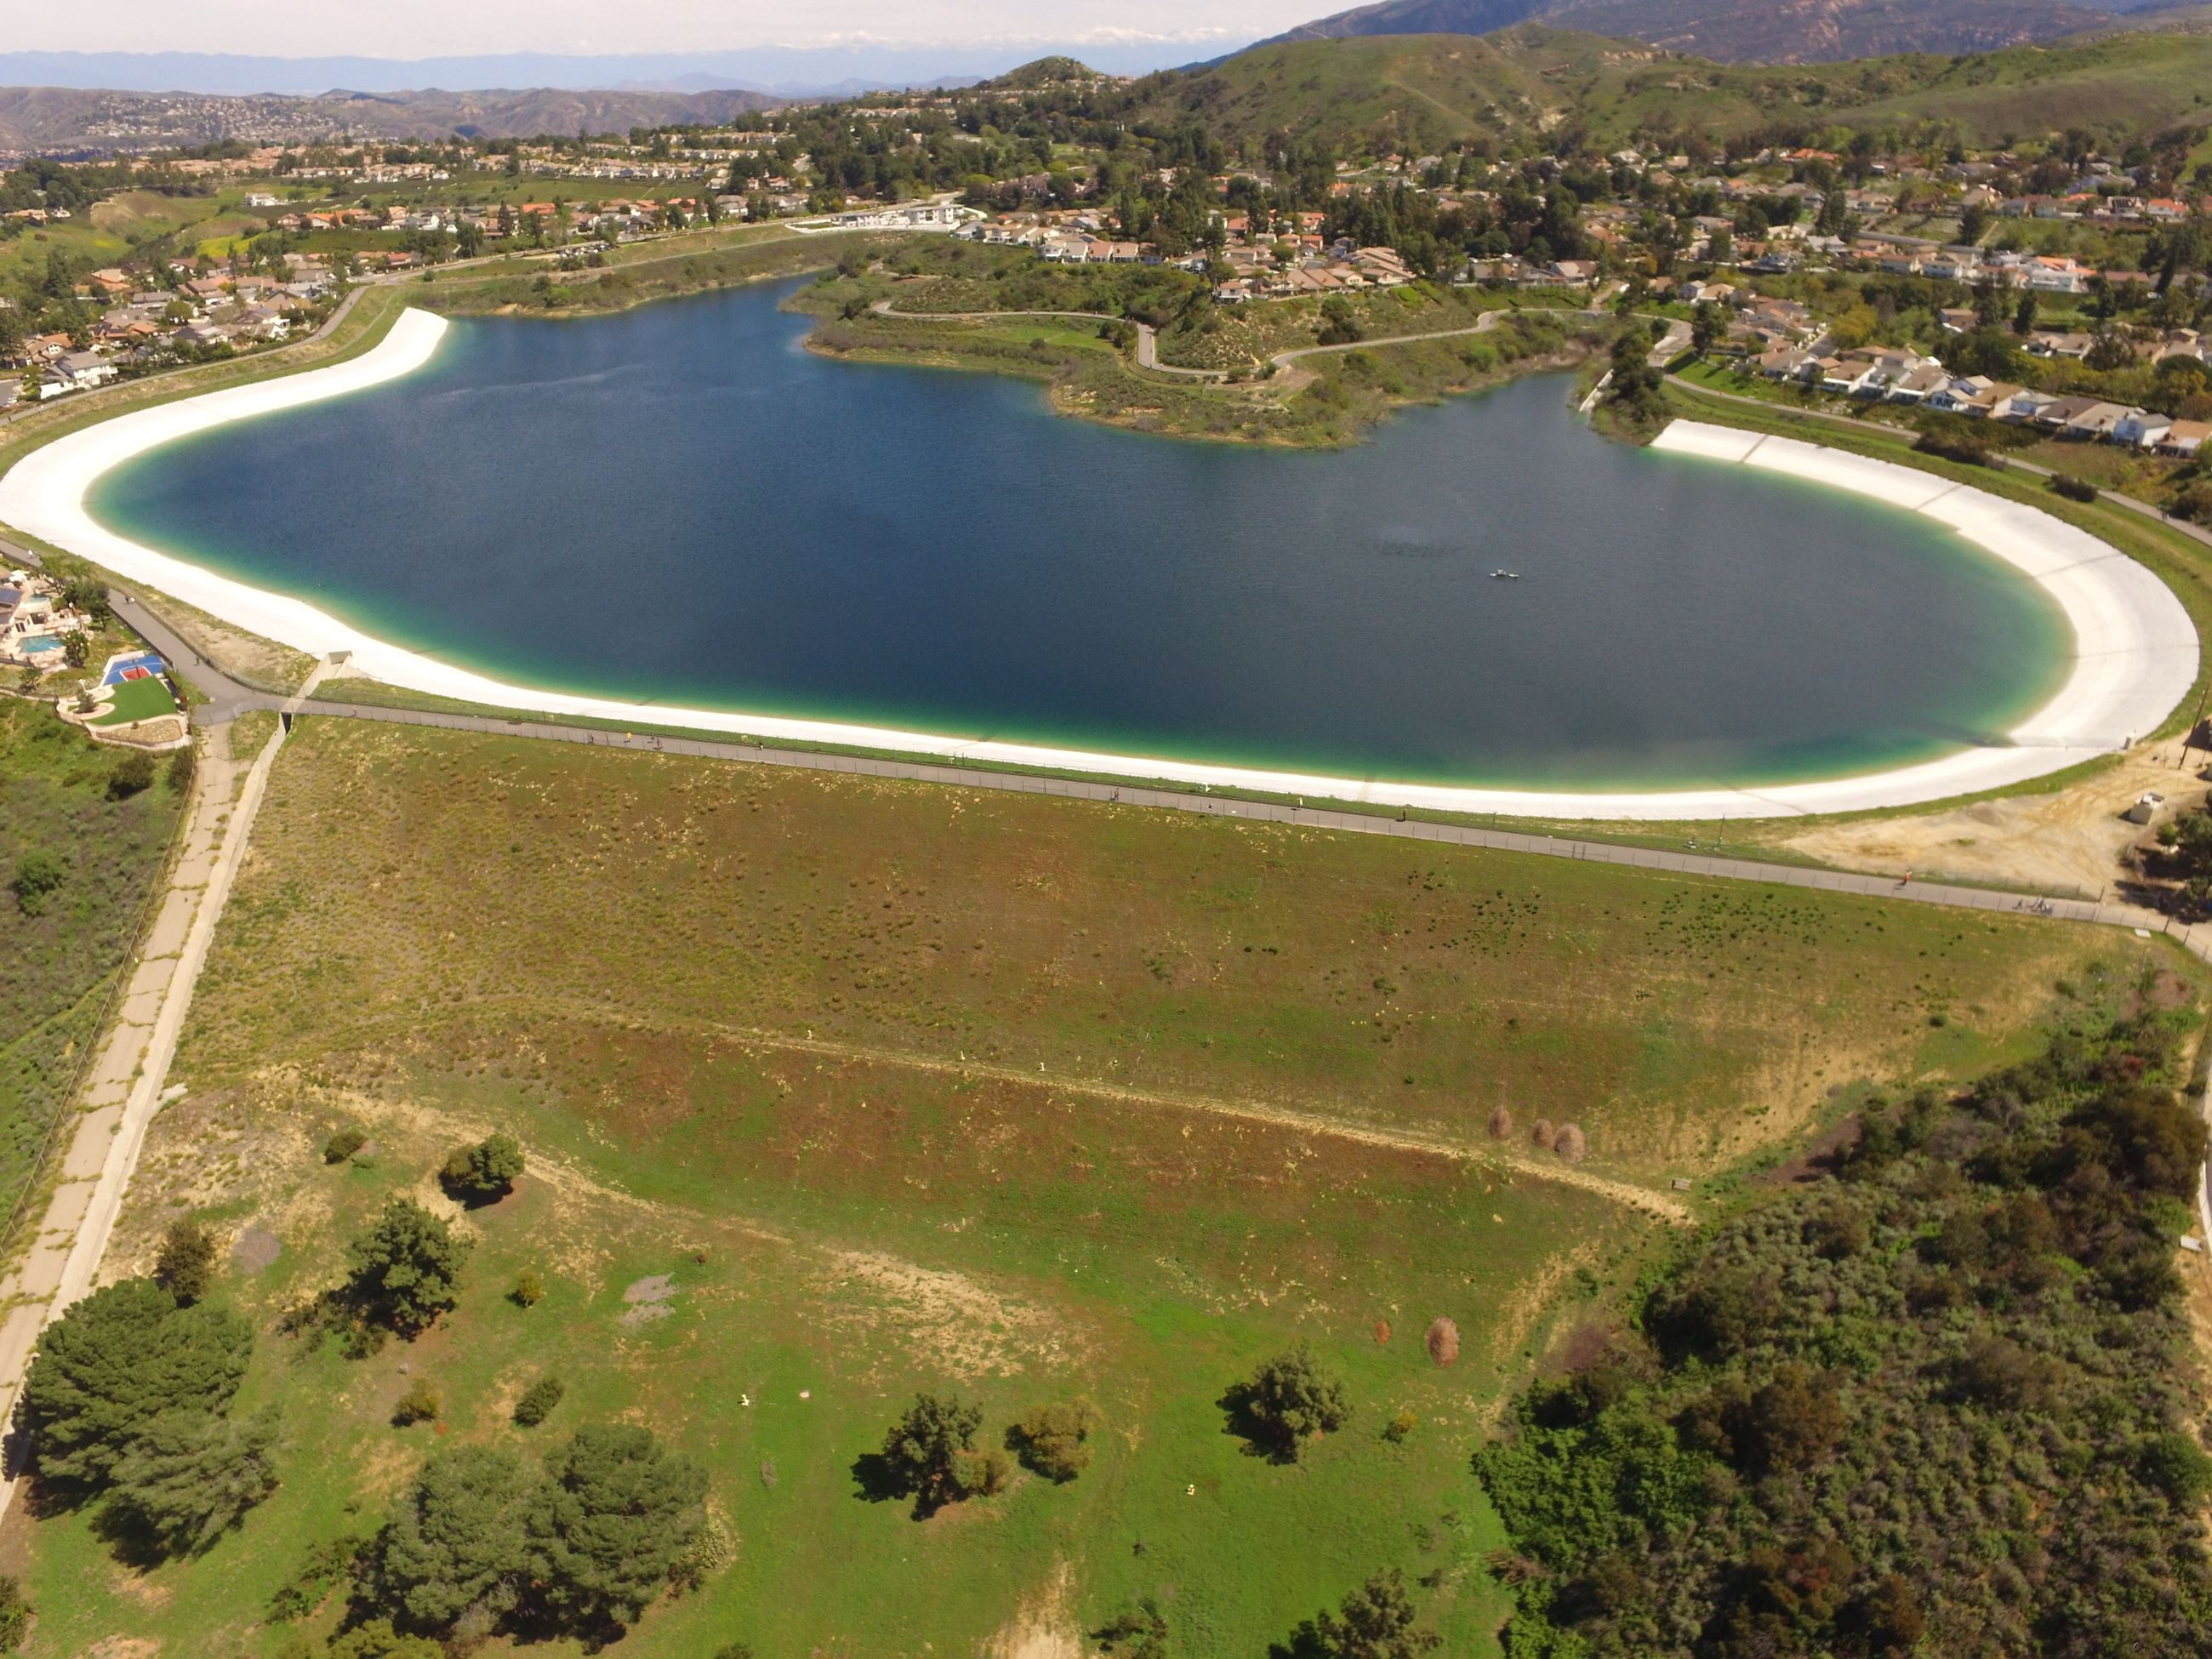 Overhead shot of Walnut Canyon Reservoir